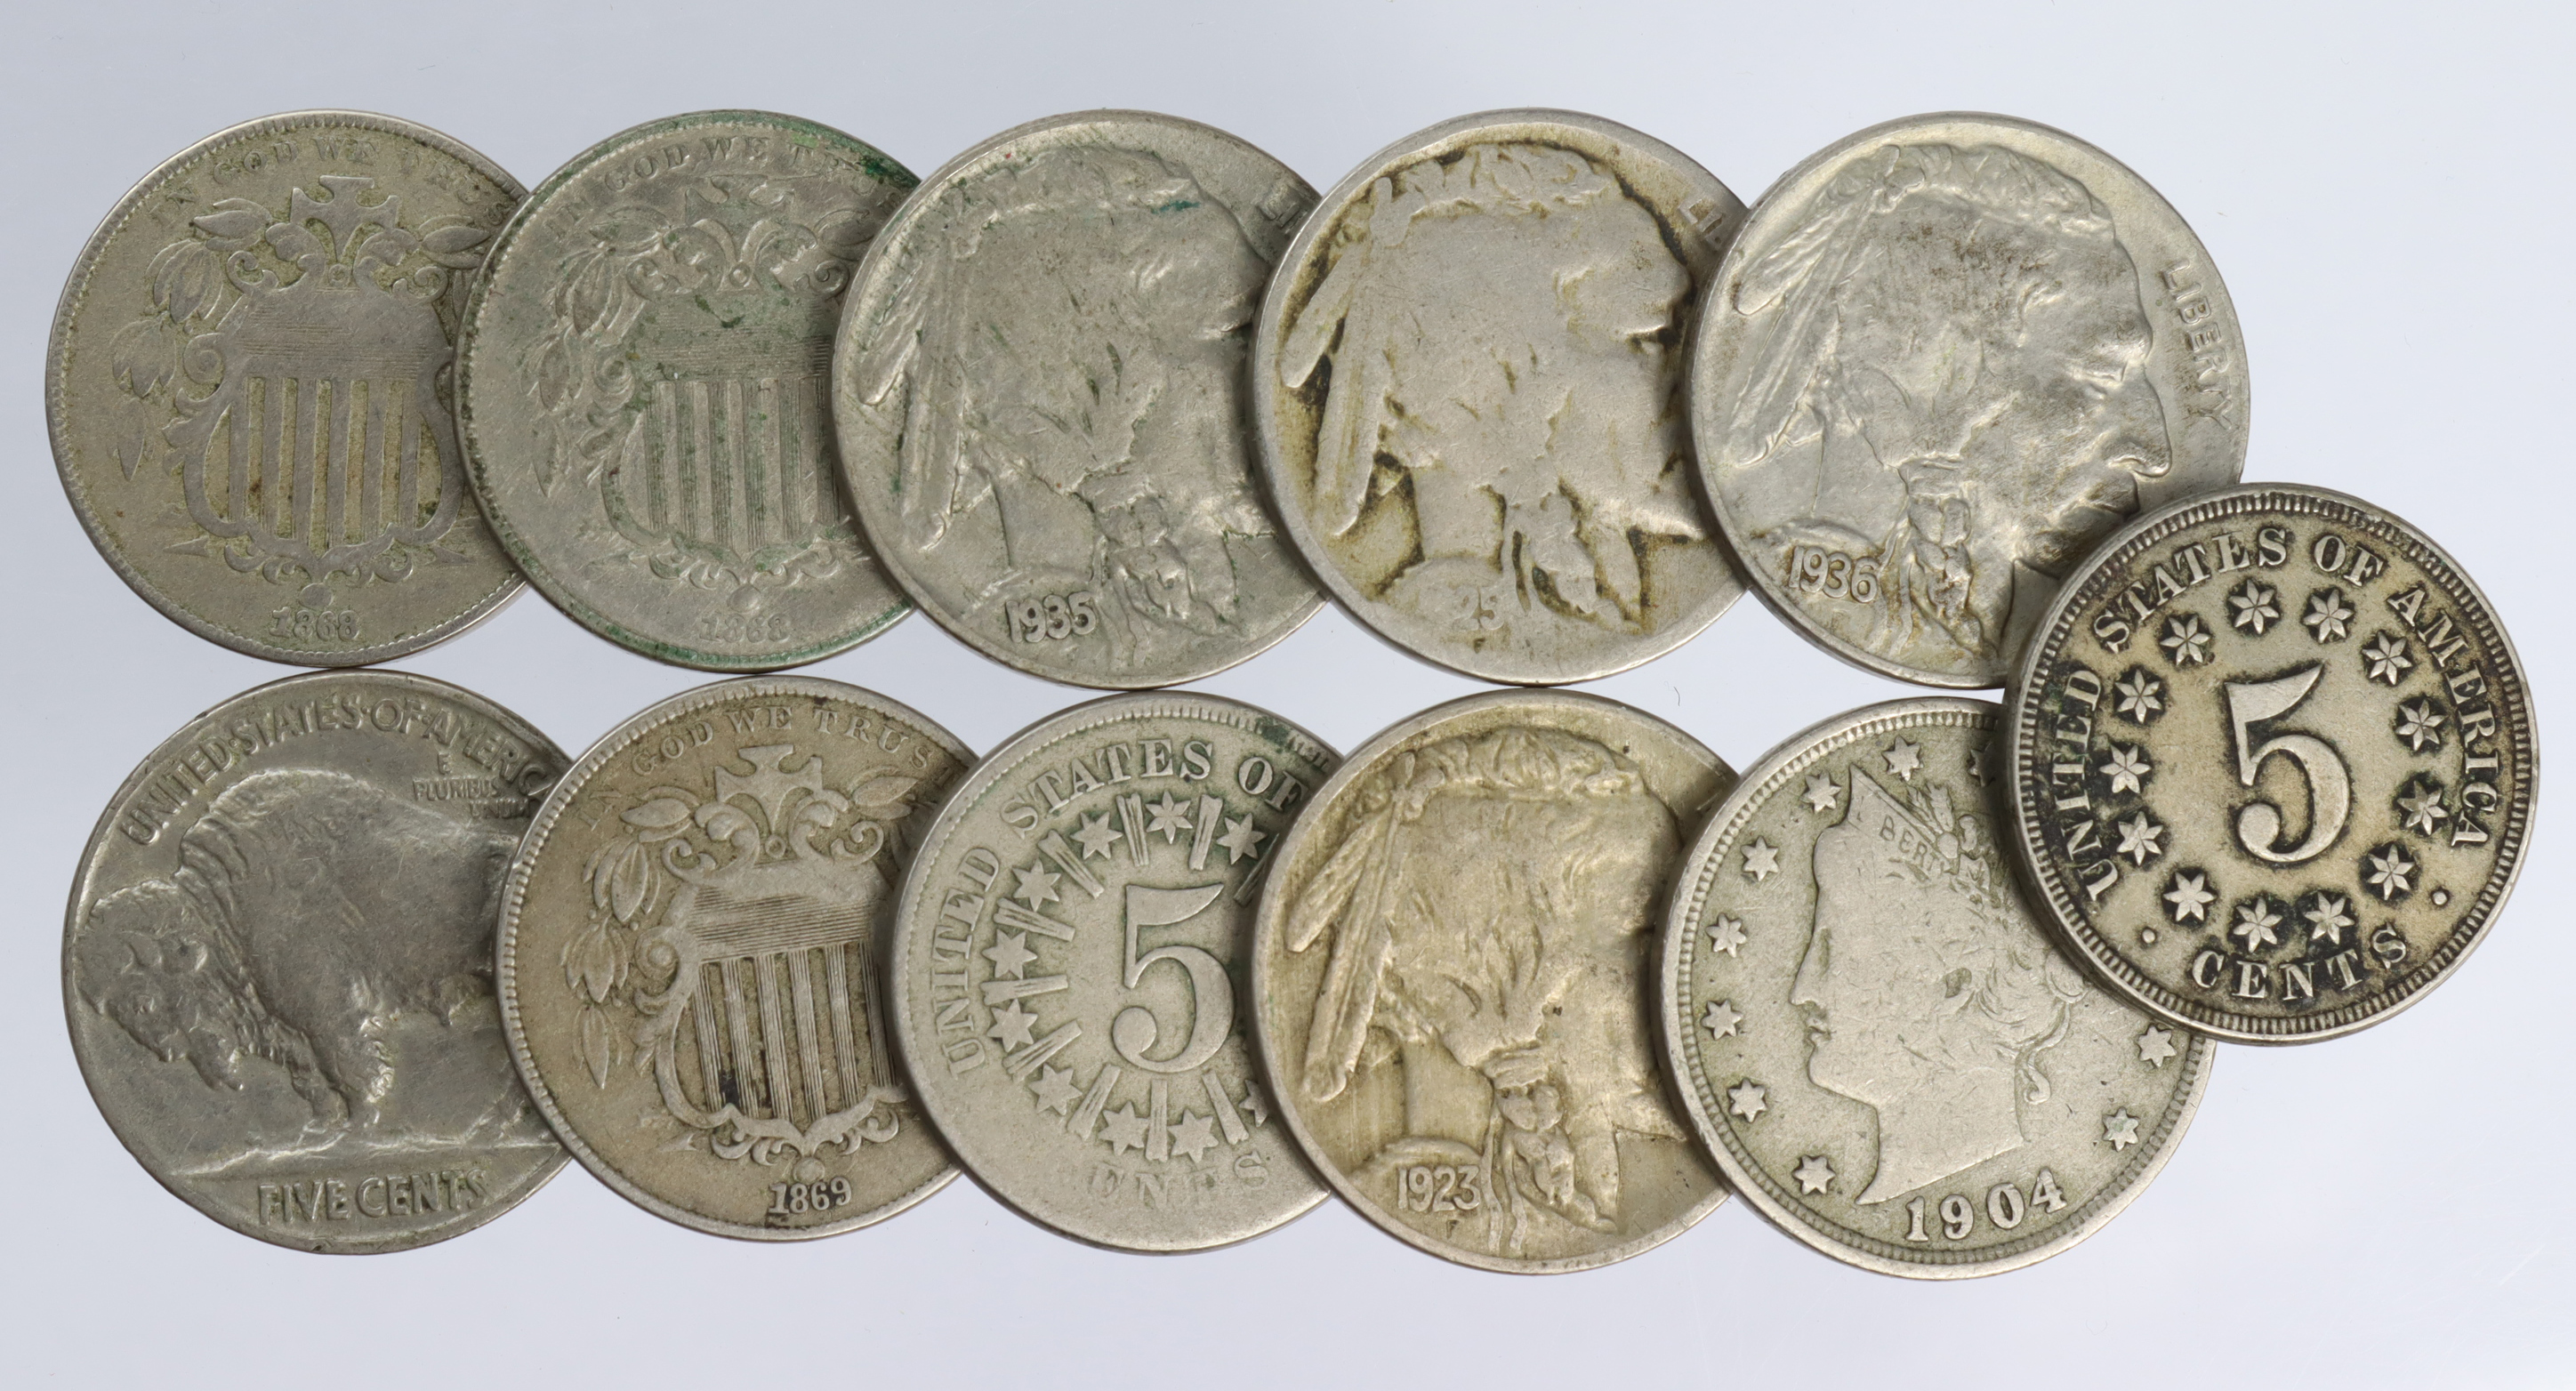 USA Nickel 5-Cents (11) 19th-20thC, noted: 1866 G, 1867 no rays GF, 1868 aVF, 1868 VG, and 1869